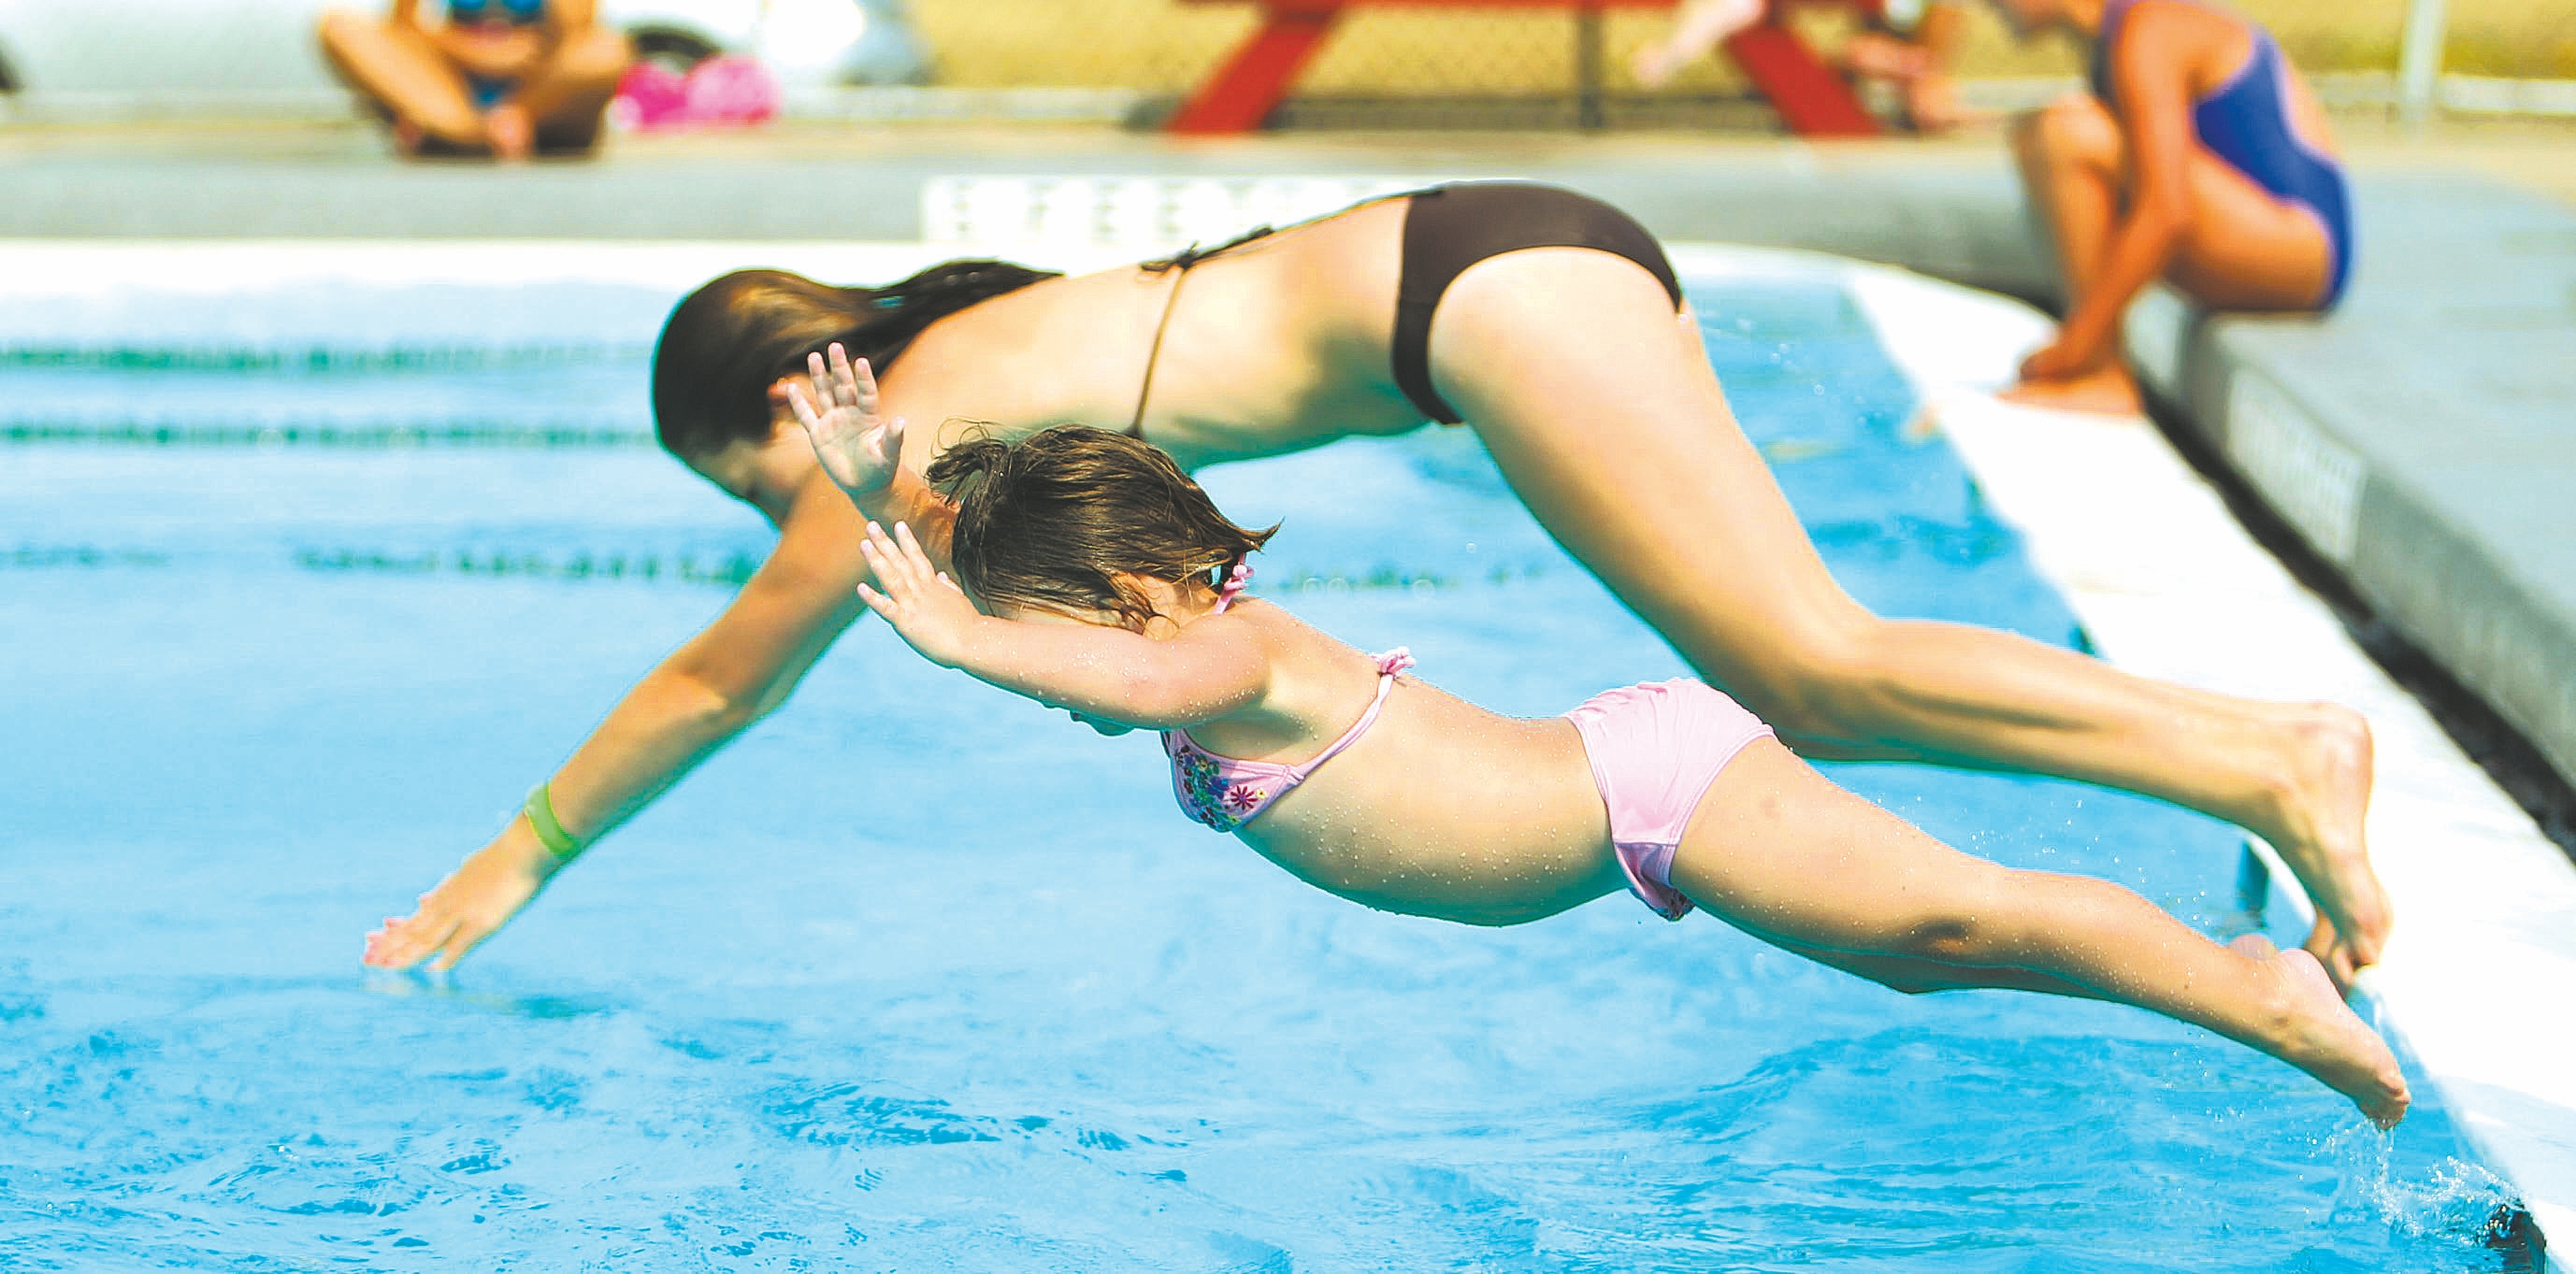 Jessica Jaskowiak, 13, and Josefina Yanosh, 3, dive into the water simultaneously at the Lincoln Pool in the Town of Tonawanda in this file photo from July 17, 2012.